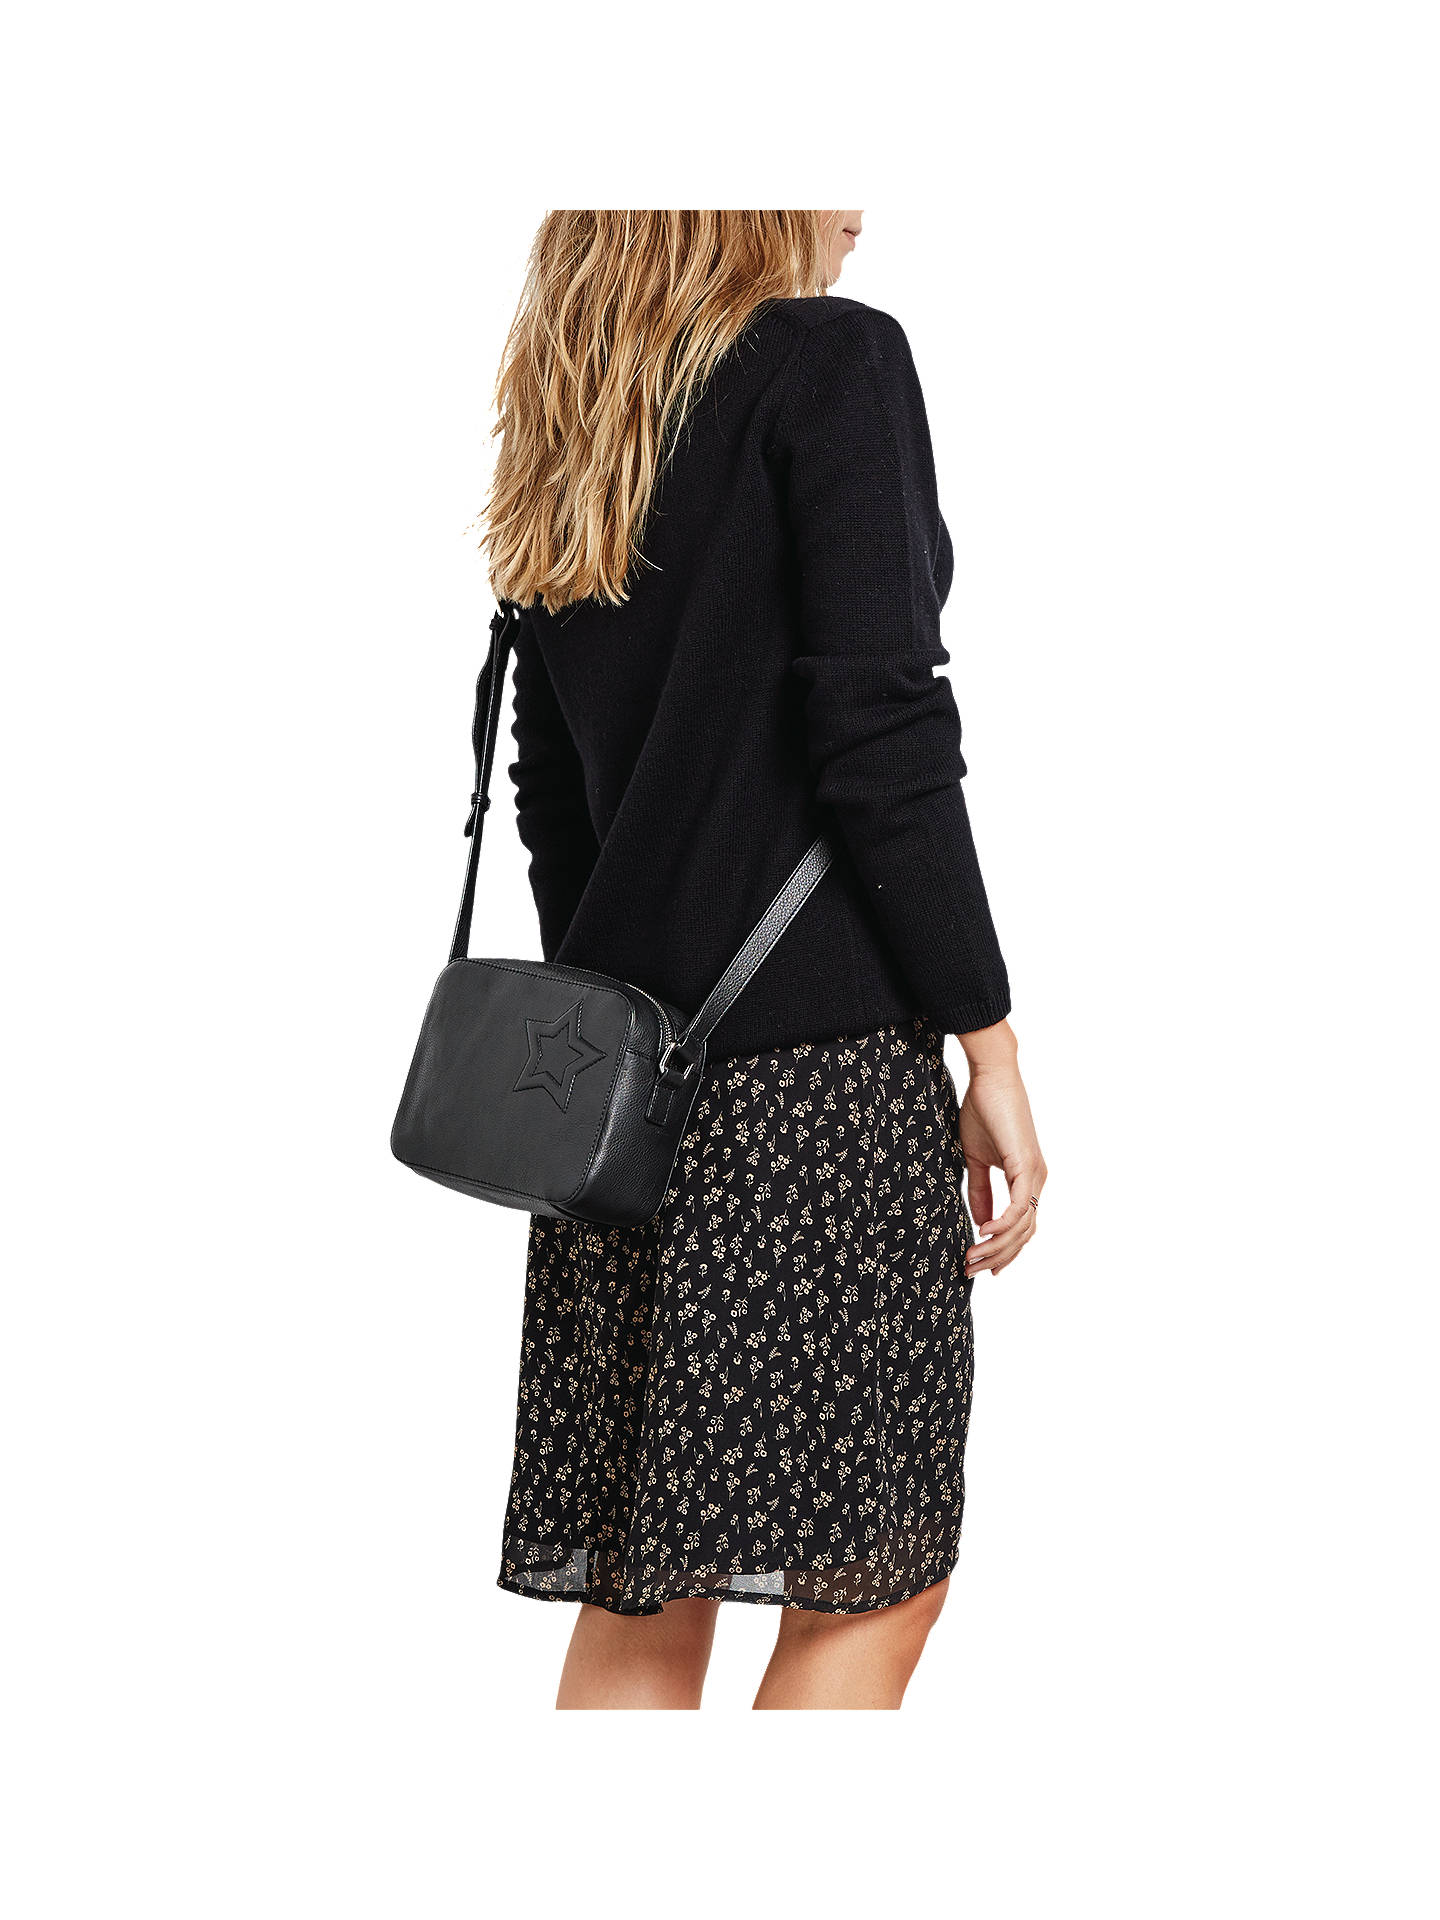 Buyhush Florence Skirt, Black/Brown, 6 Online at johnlewis.com